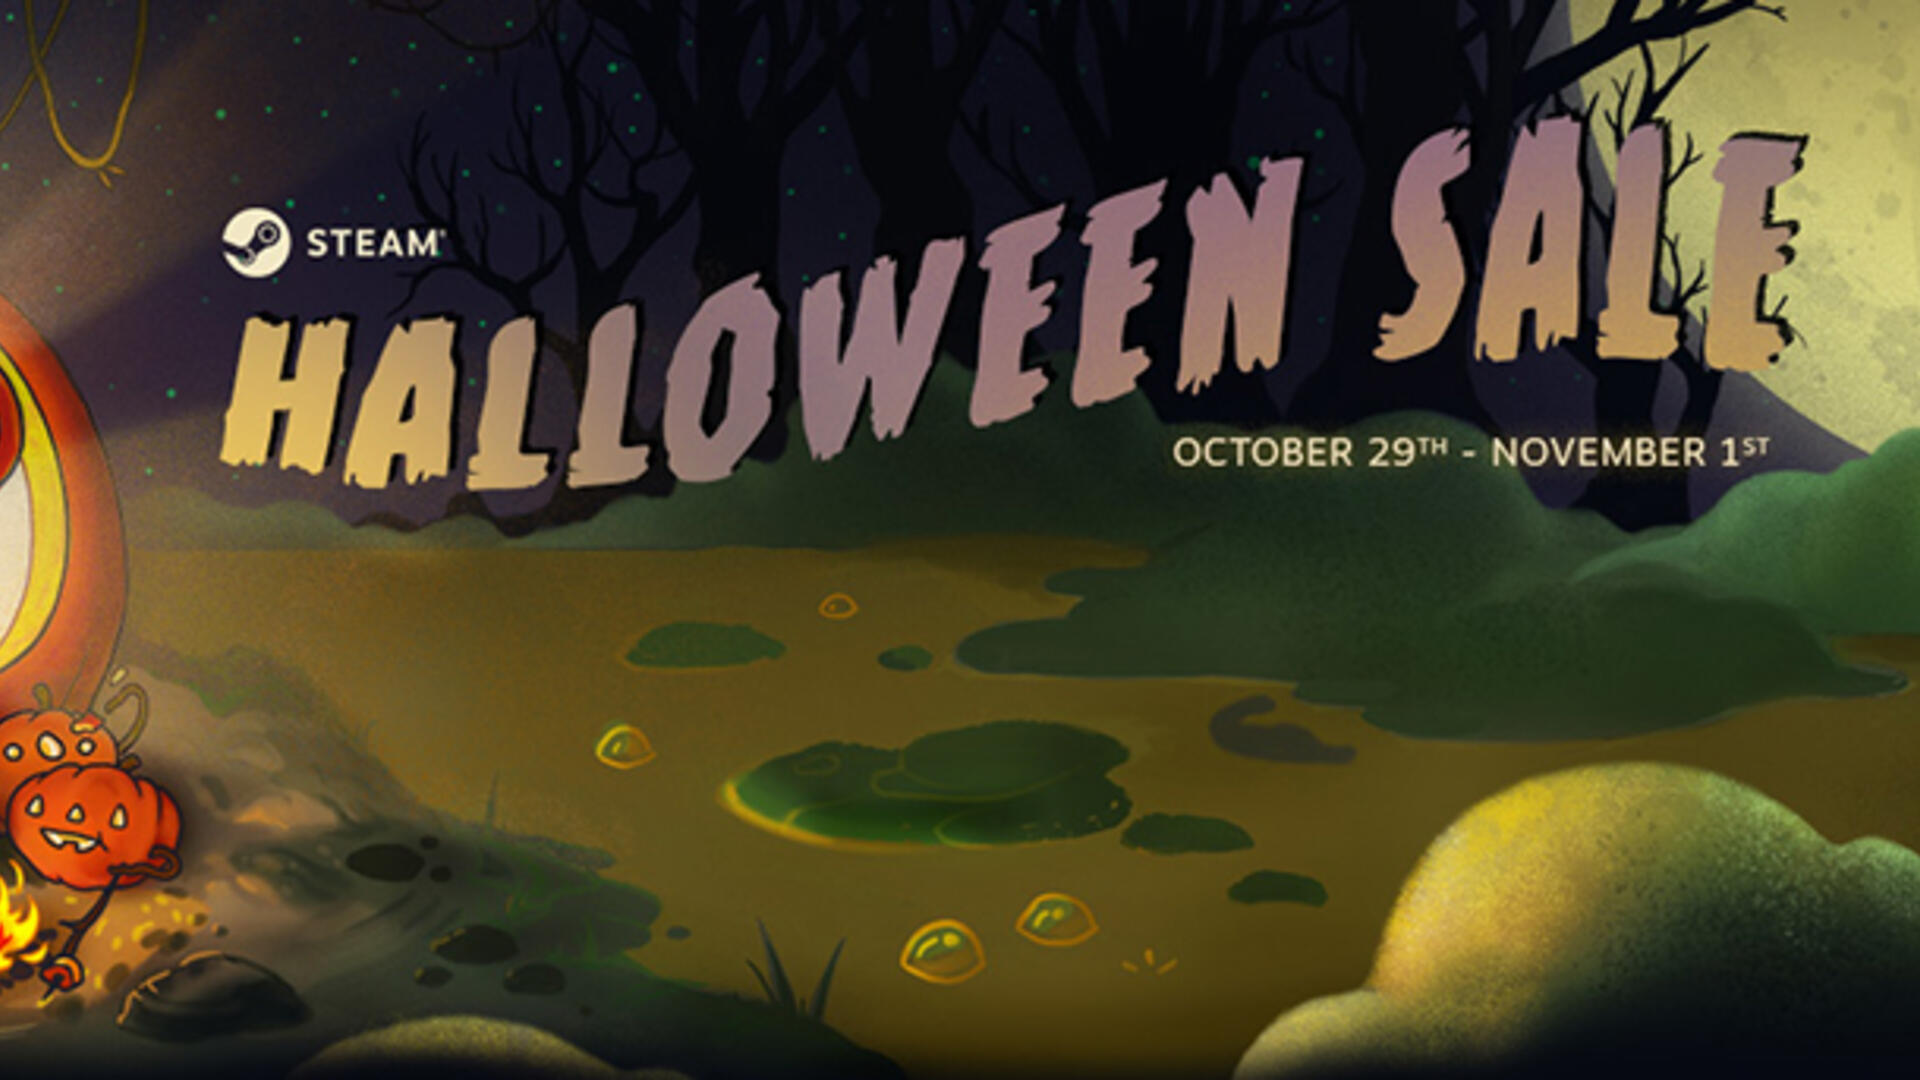 Steam Halloween Sale 2018 Is Underway: Here Are Some of the Highlights